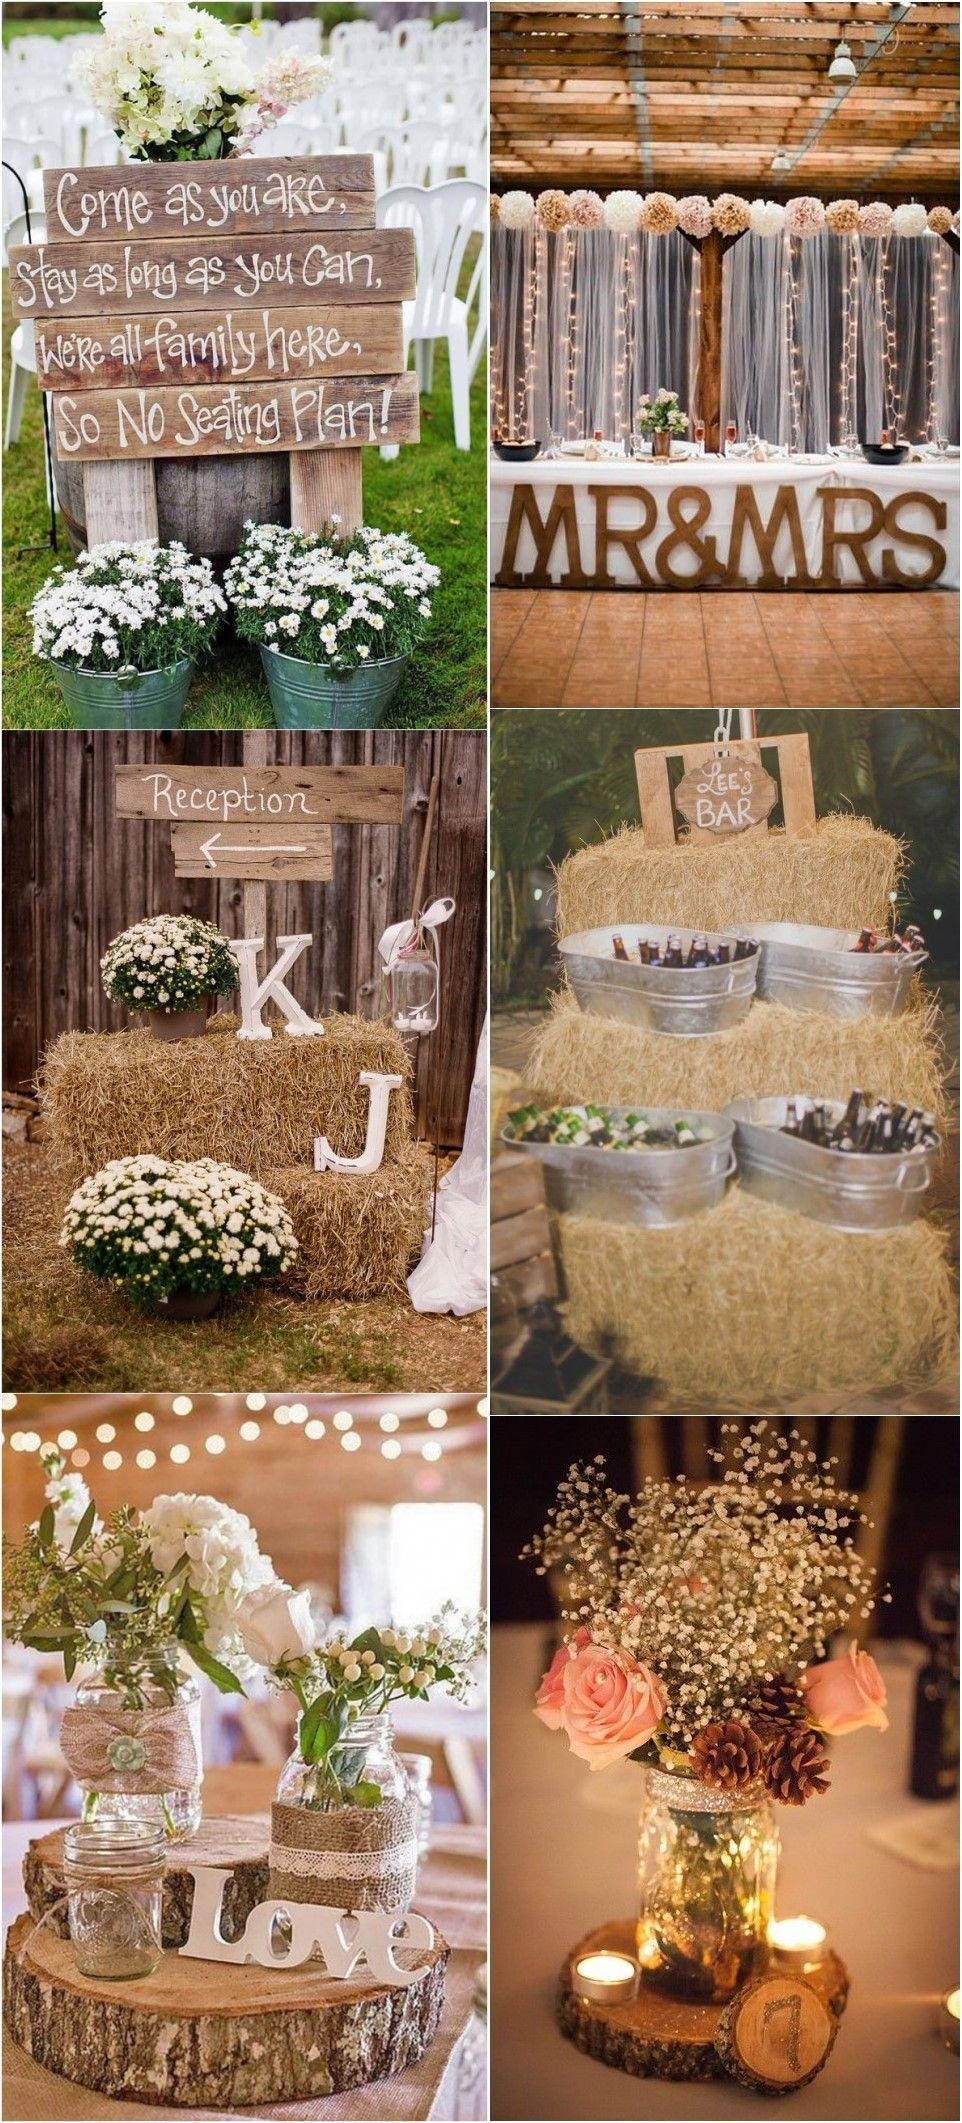 16 rustic country wedding ideas to shine in 2018 #weddings